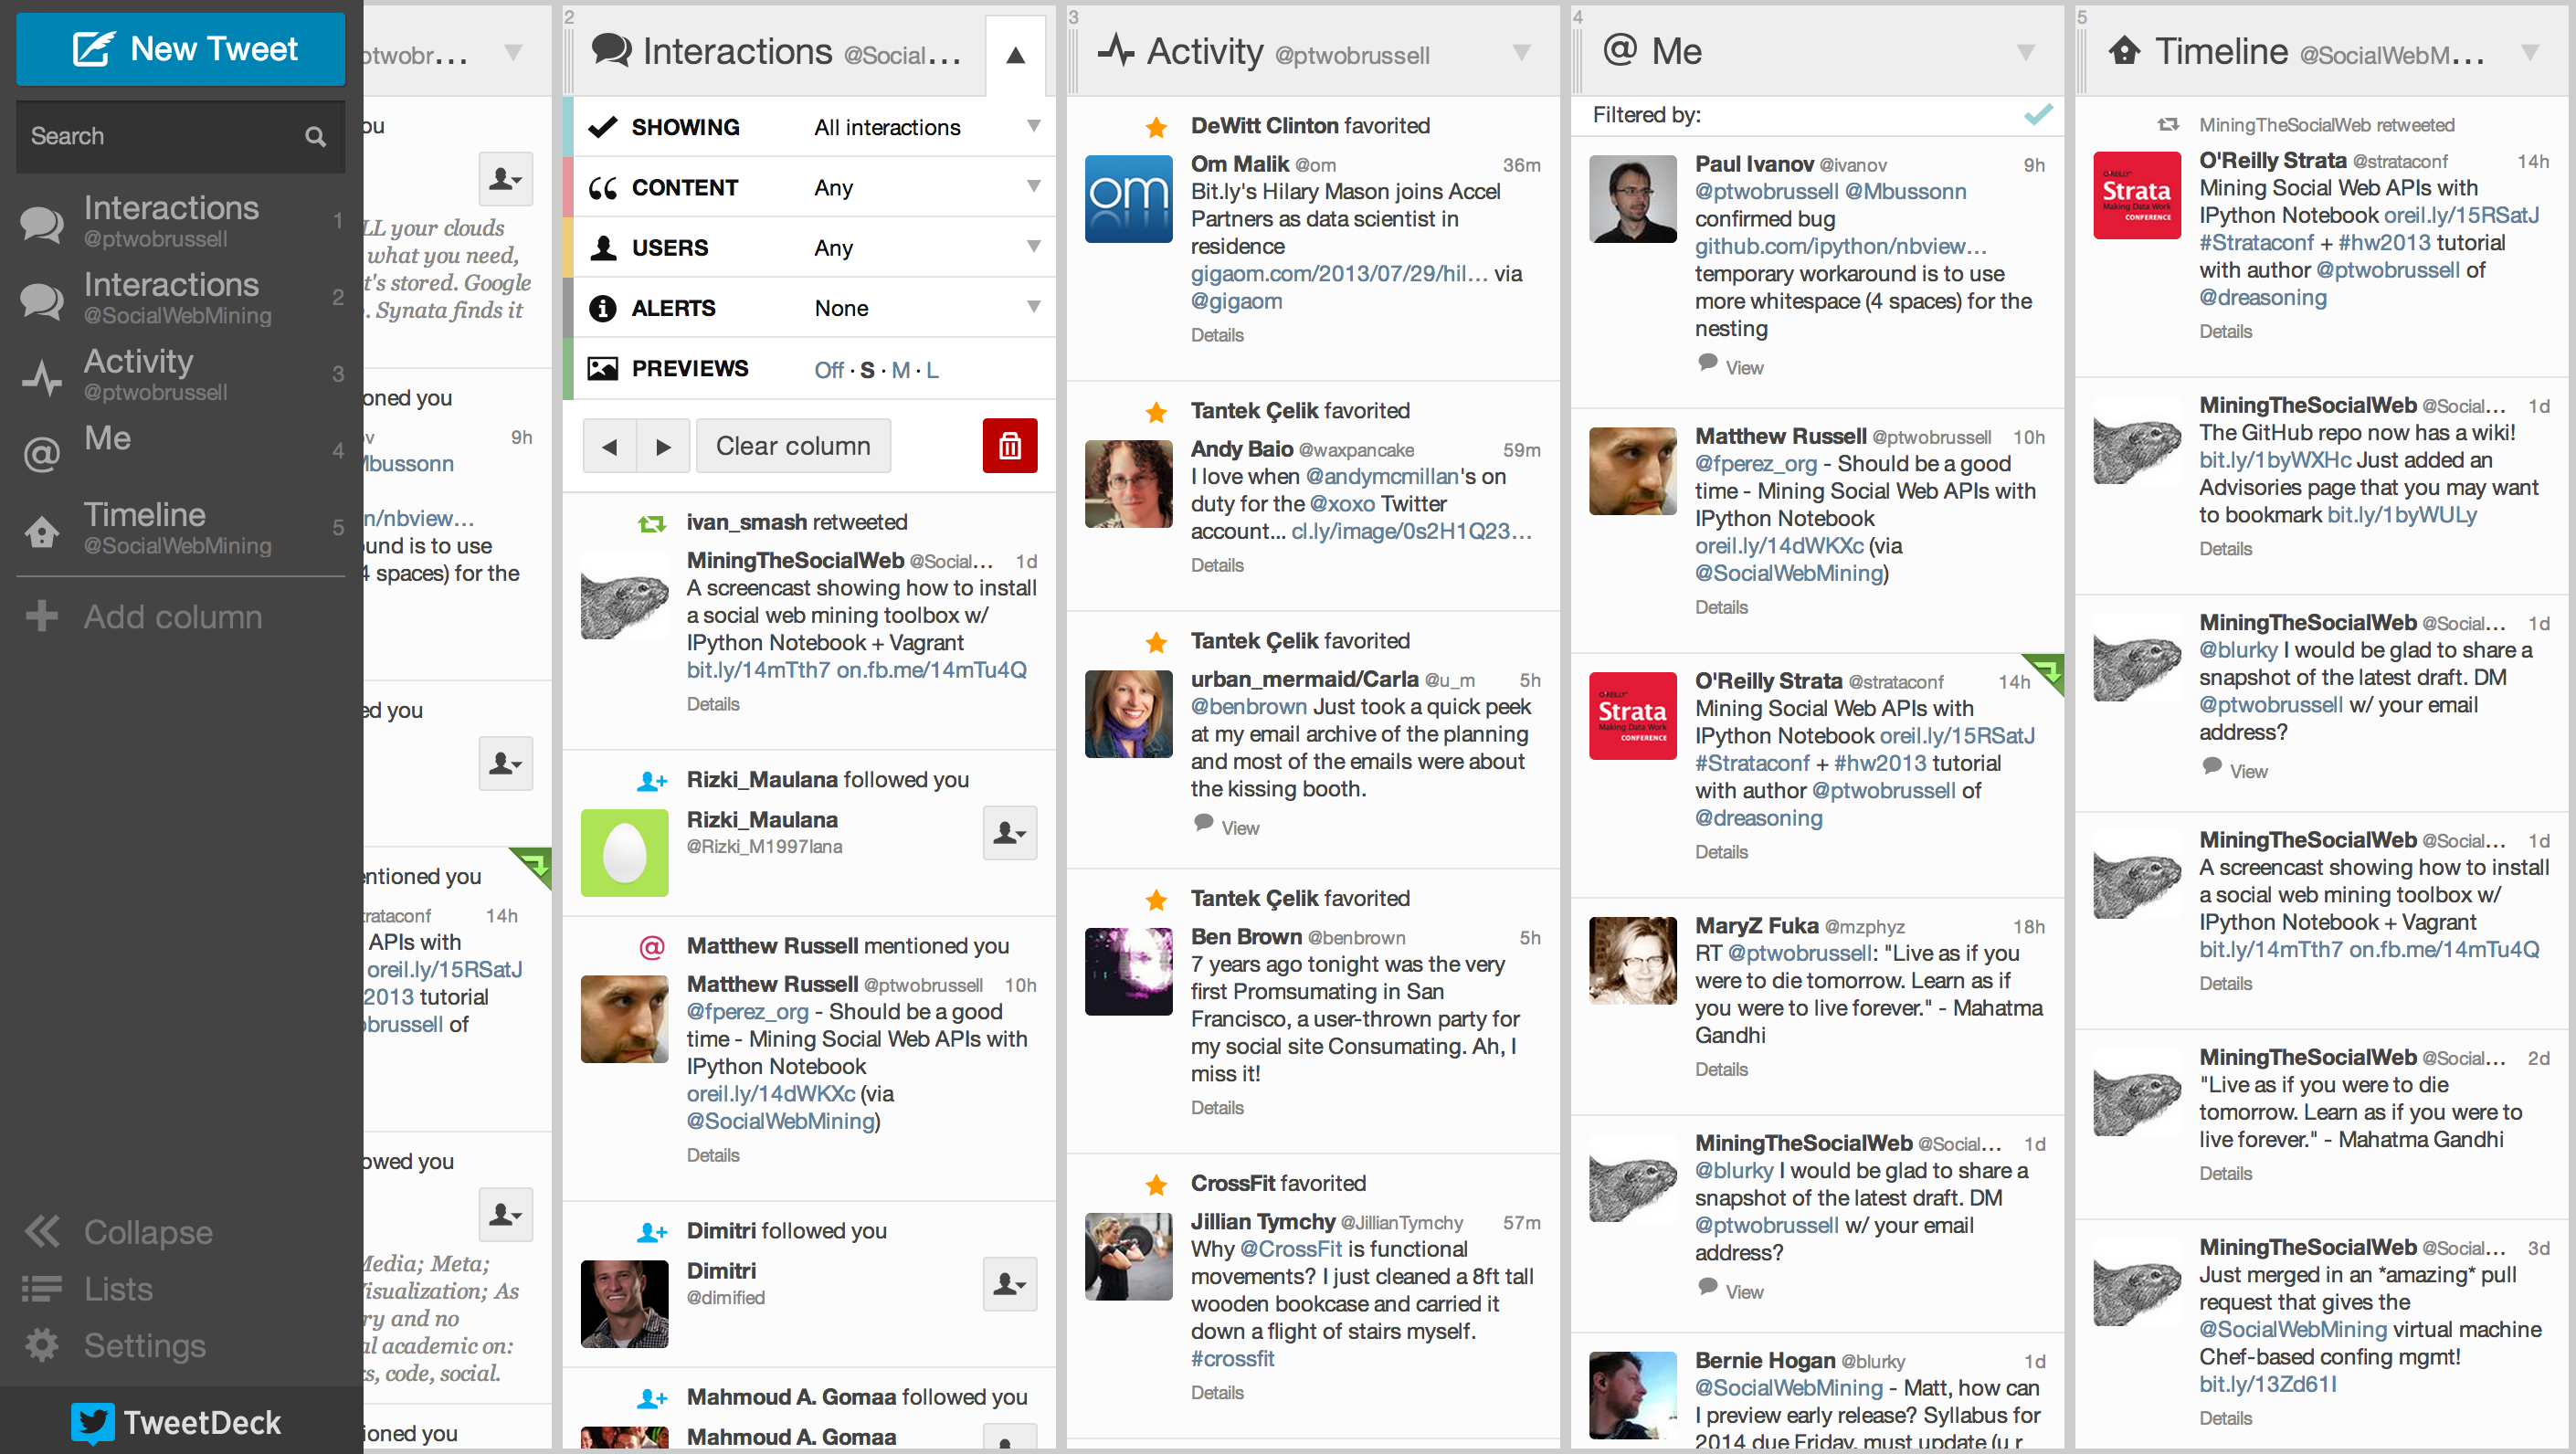 TweetDeck provides a highly customizable user interface that can be helpful for analyzing what is happening on Twitter and demonstrates the kind of data that you have access to through the Twitter API